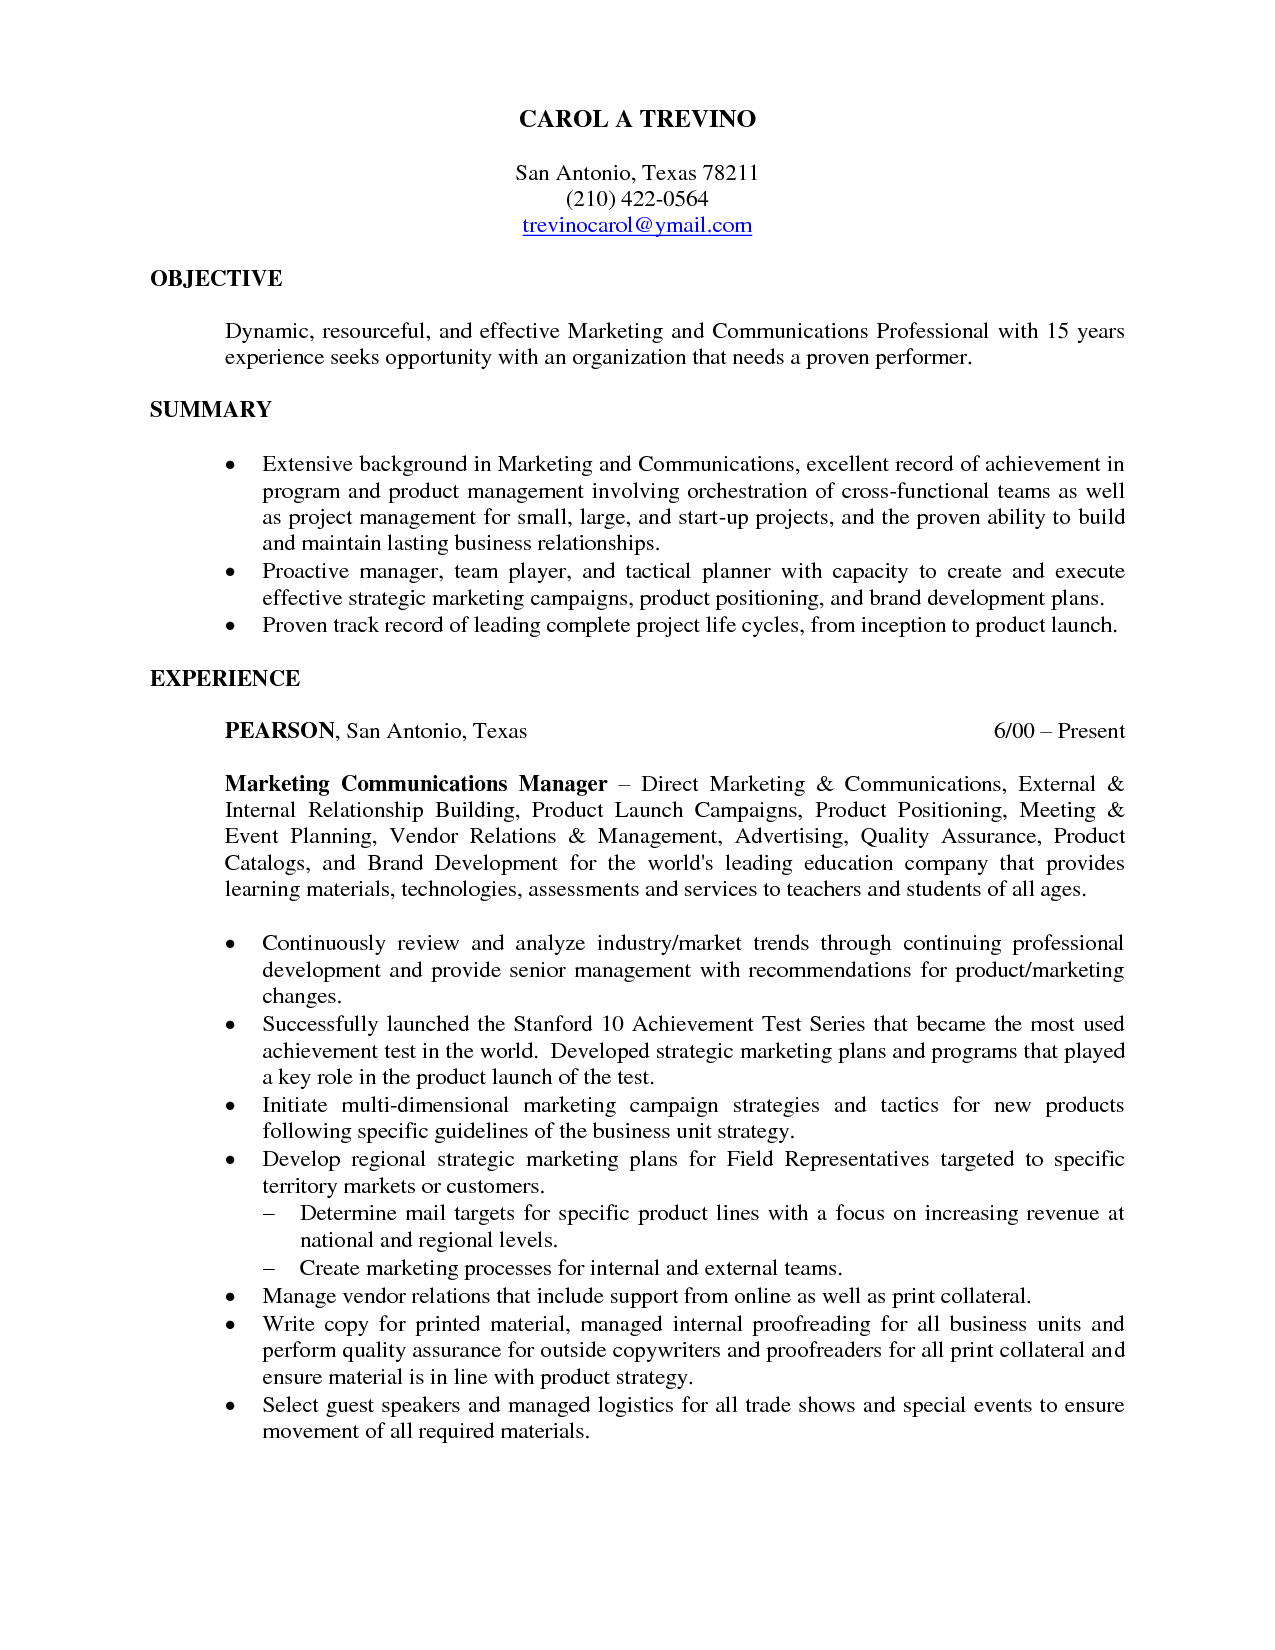 Marketing Resume Summary Statement Examples 15 Objective Resume Examples Samplebusinessresume